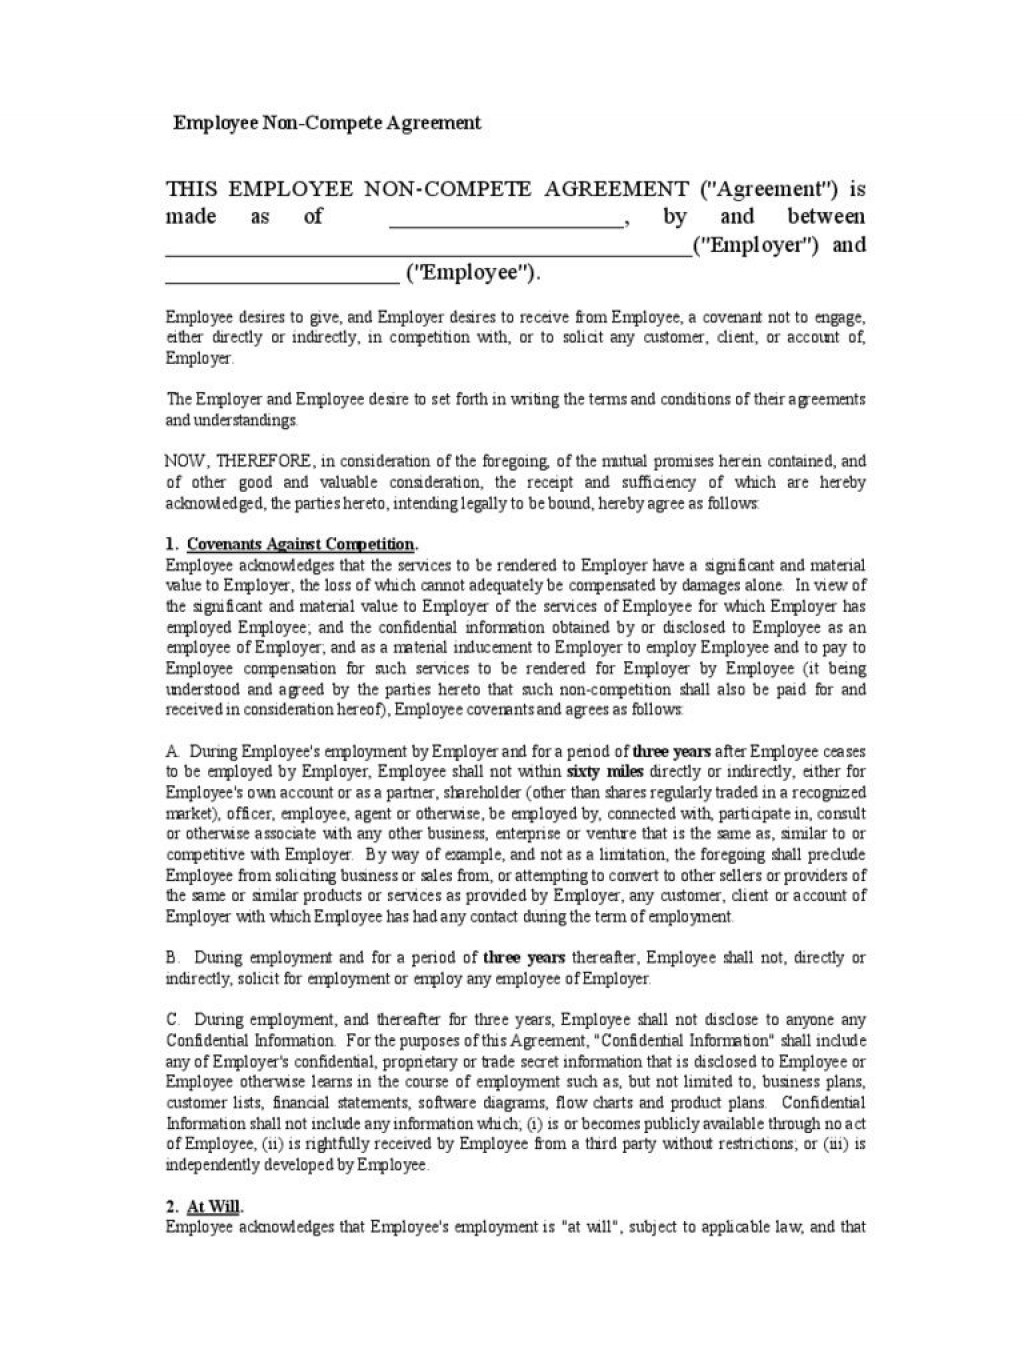 002 Fantastic Employee Non Compete Agreement Template Highest Quality  Free Confidentiality Non-compete DisclosureLarge